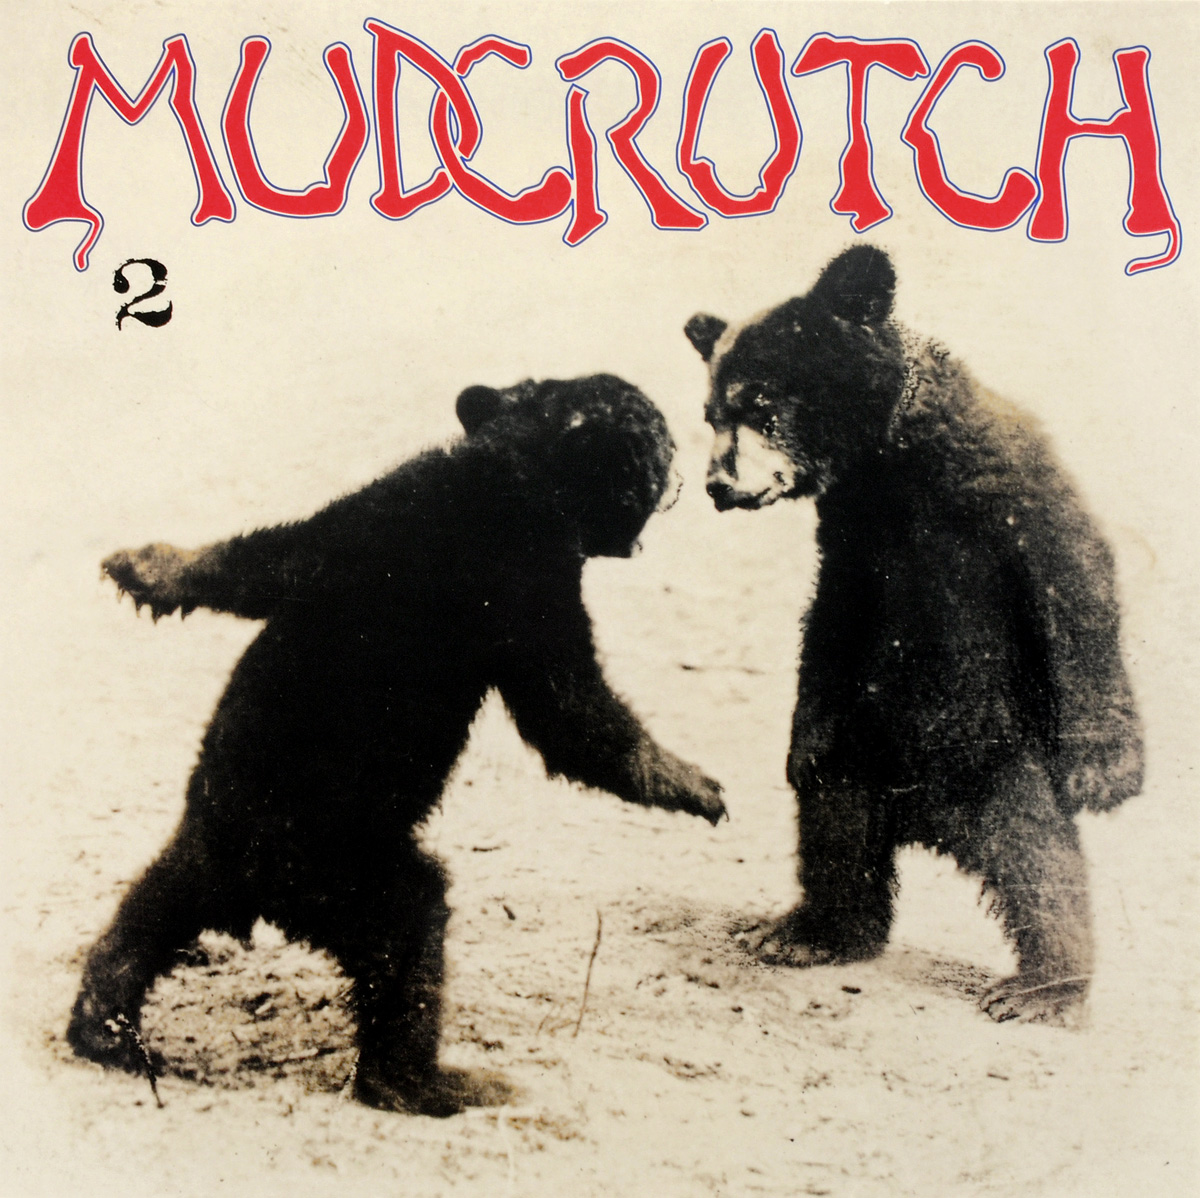 """Mudcrutch"" Mudcrutch. 2 (LP)"